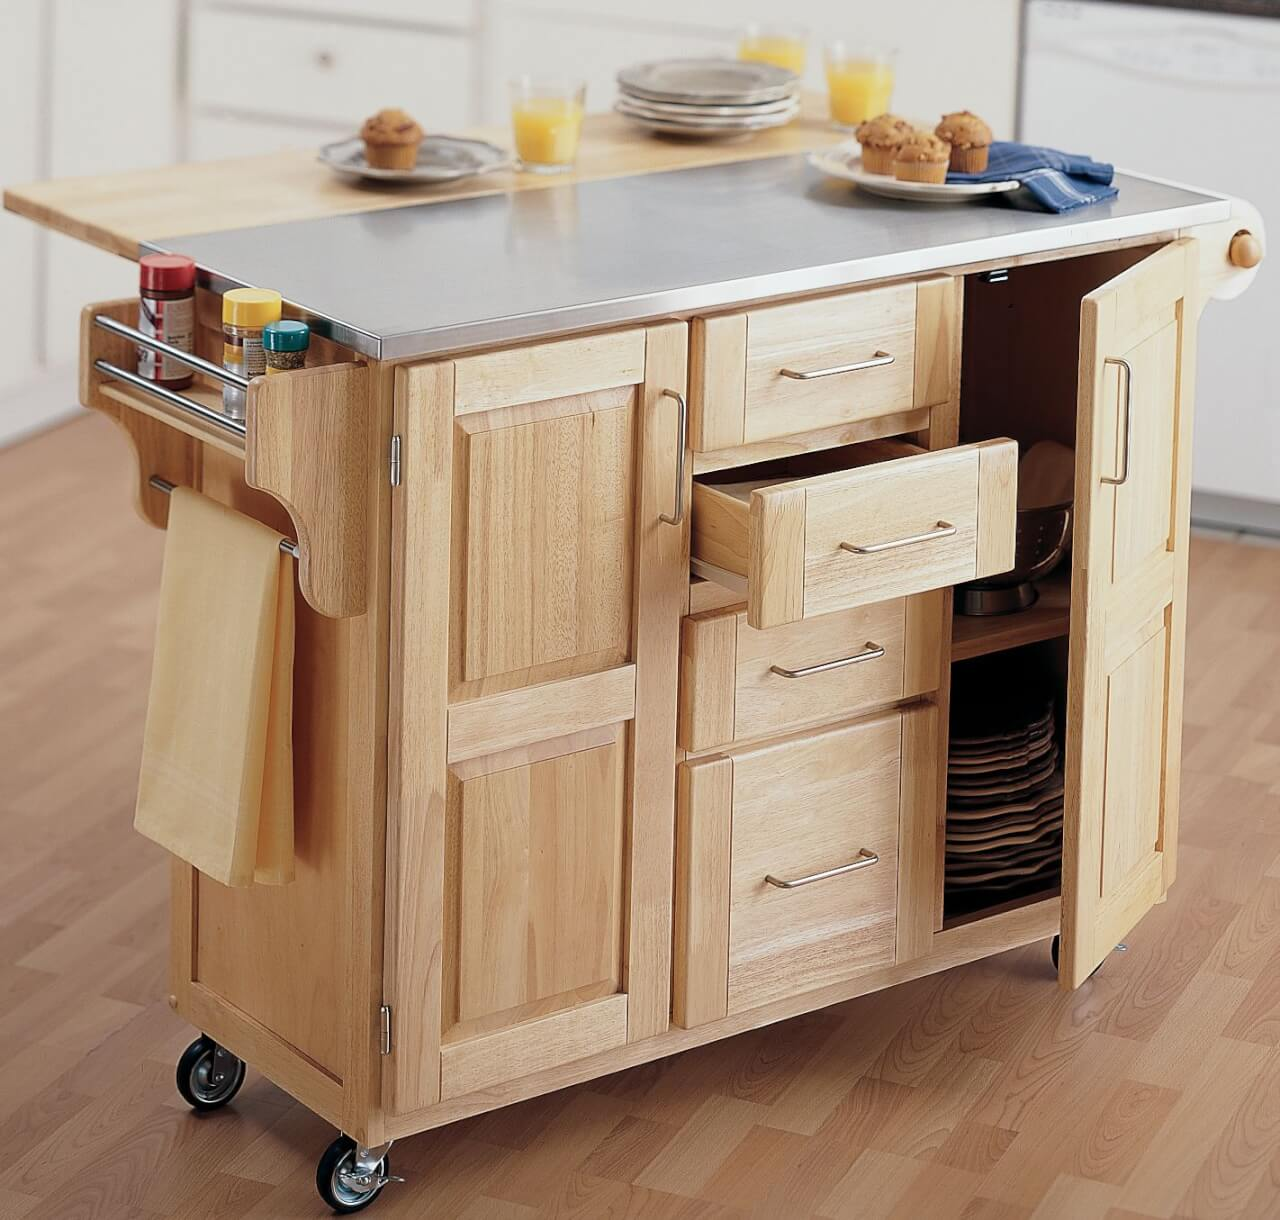 Rolling Island For Kitchen: Kitchen Island Are More Practical Than Kitchen Bars